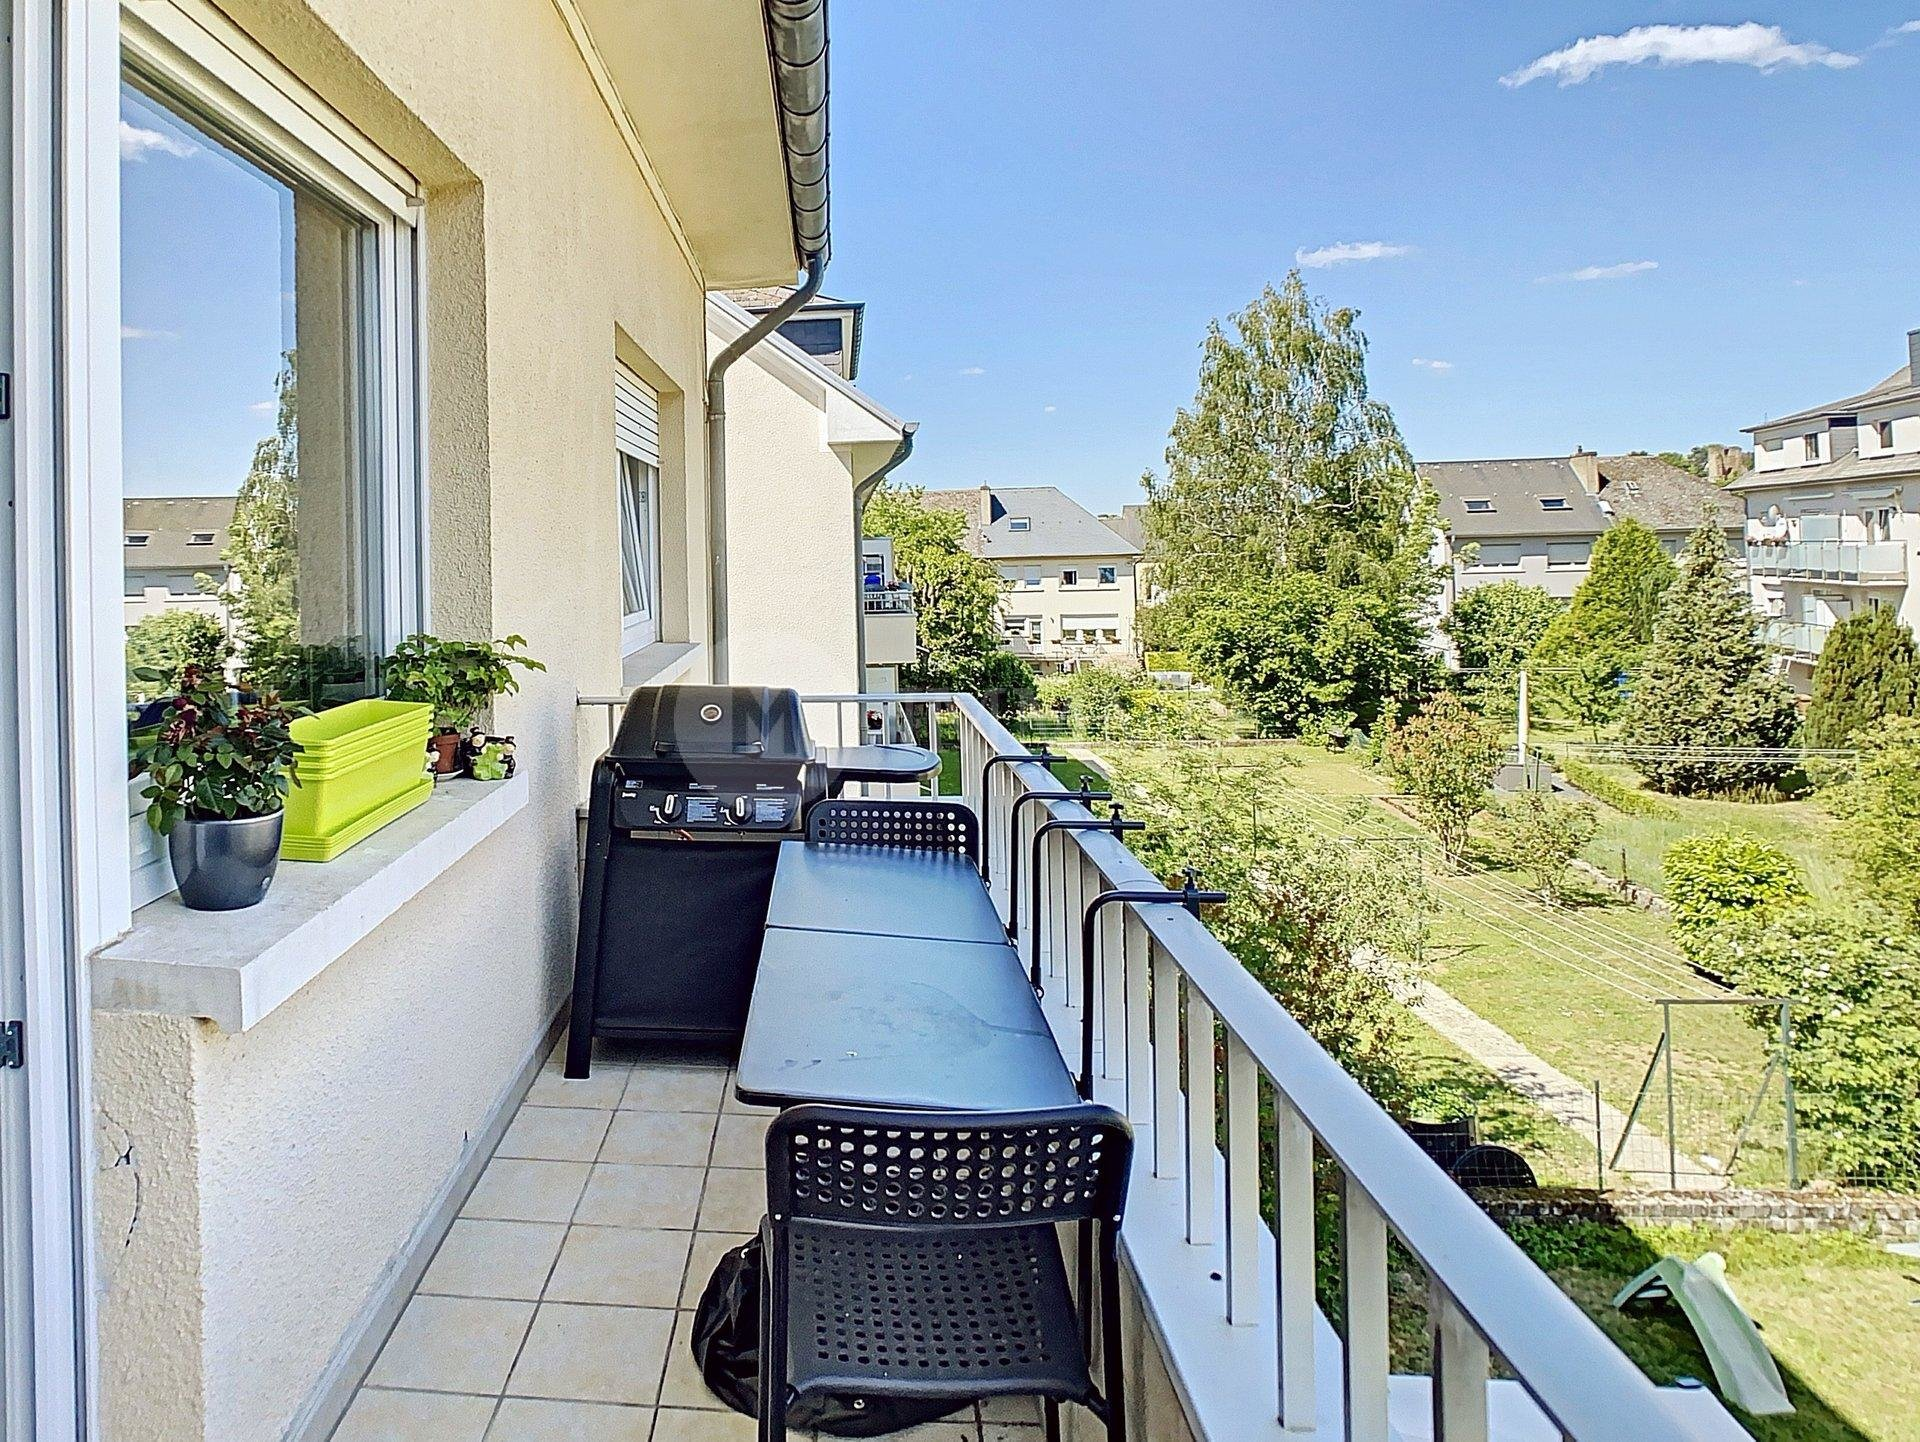 Apartment for sale in Alzingen